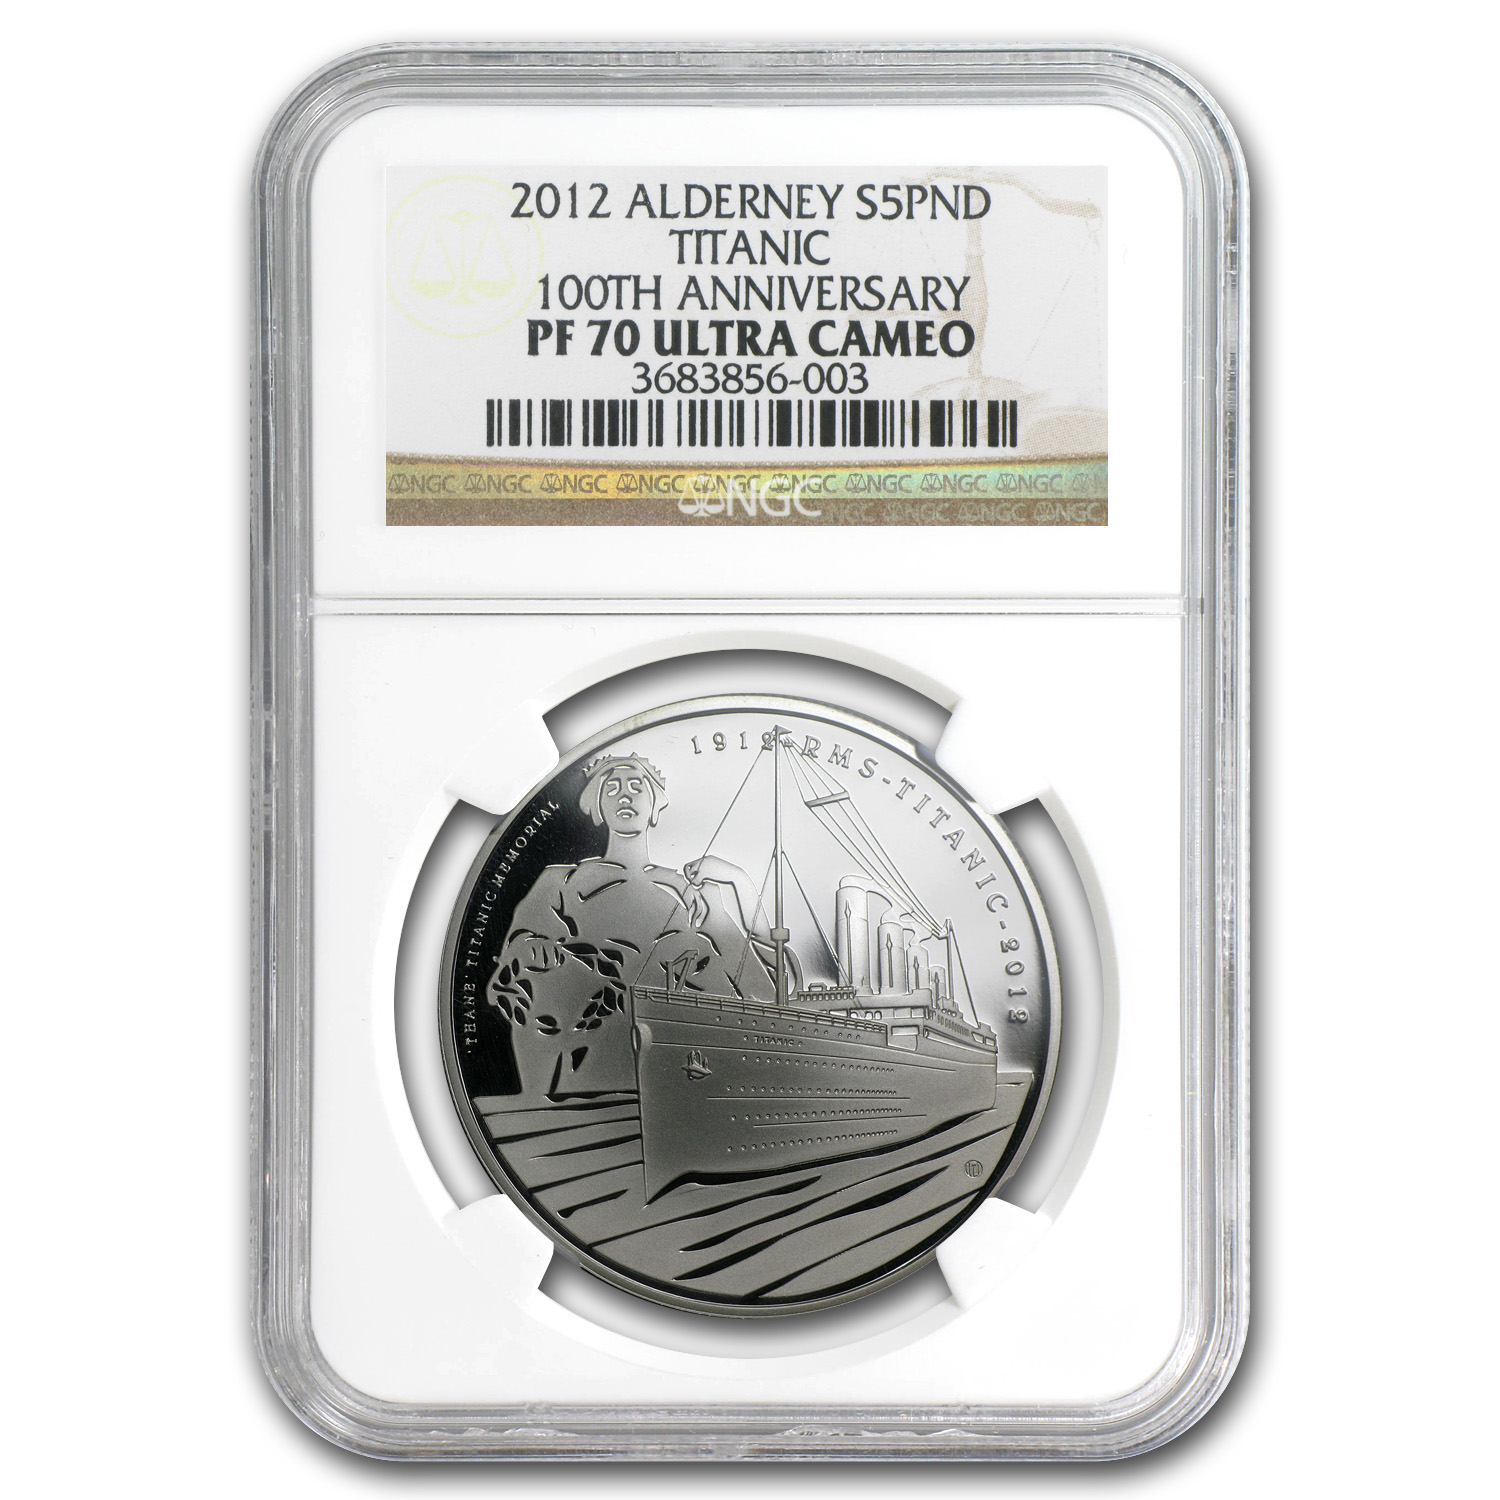 Alderney 2012 10 Pounds Silver 100th Anniv. Titanic PF-70 NGC